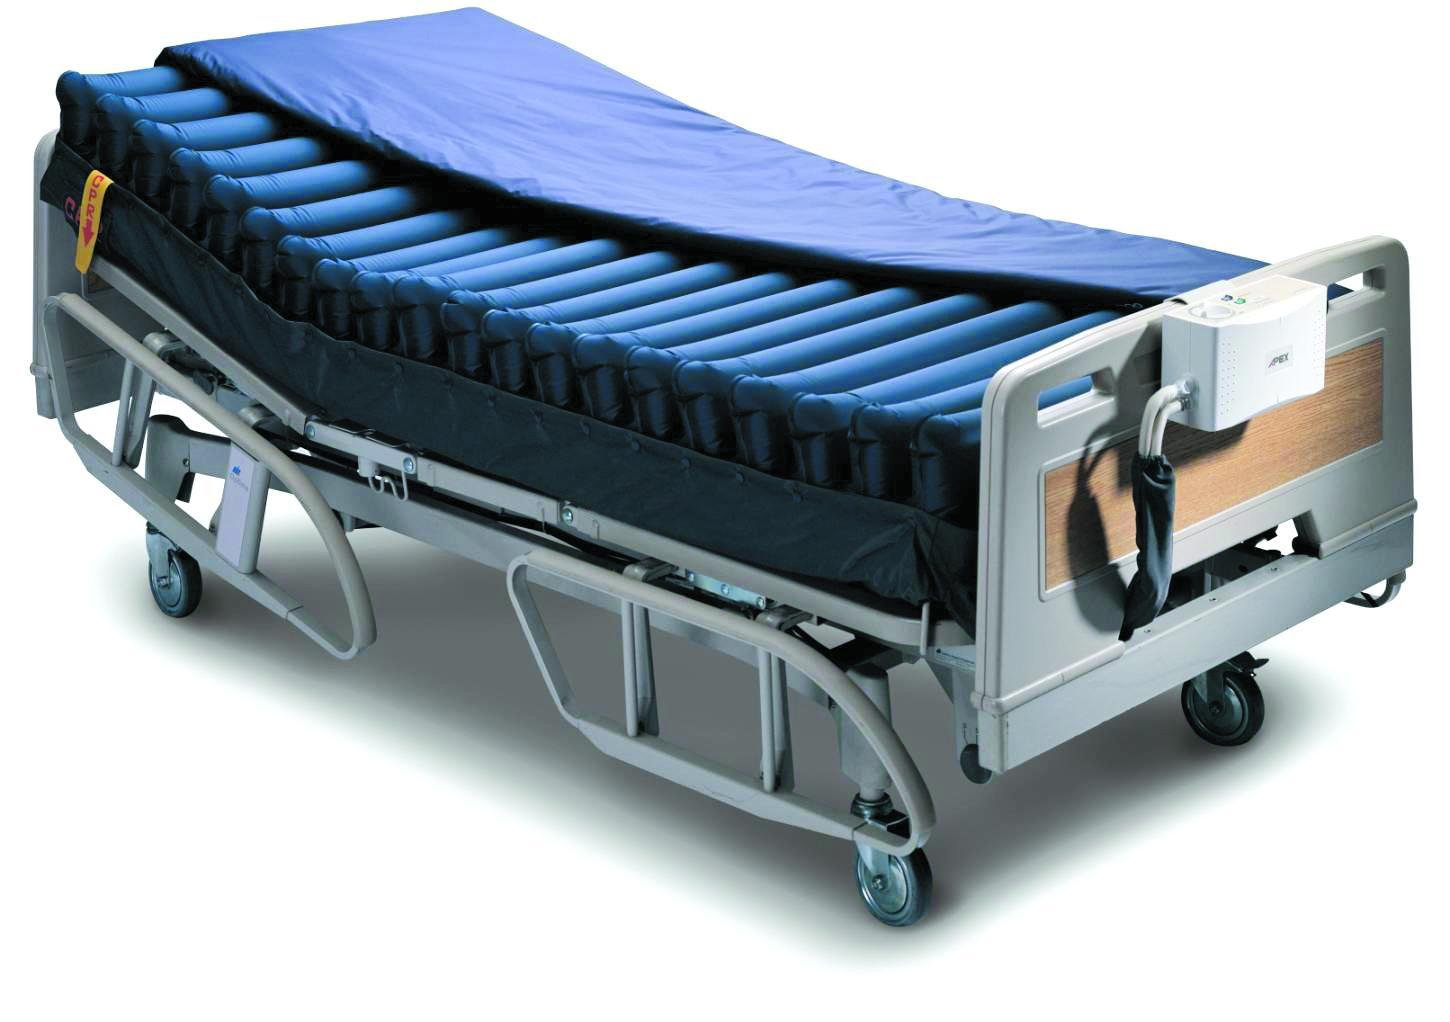 "Invacare Alternating Pressure Relief Mattress Replacement System 78.7'' x 35.4'' x 8"" (inflated)"